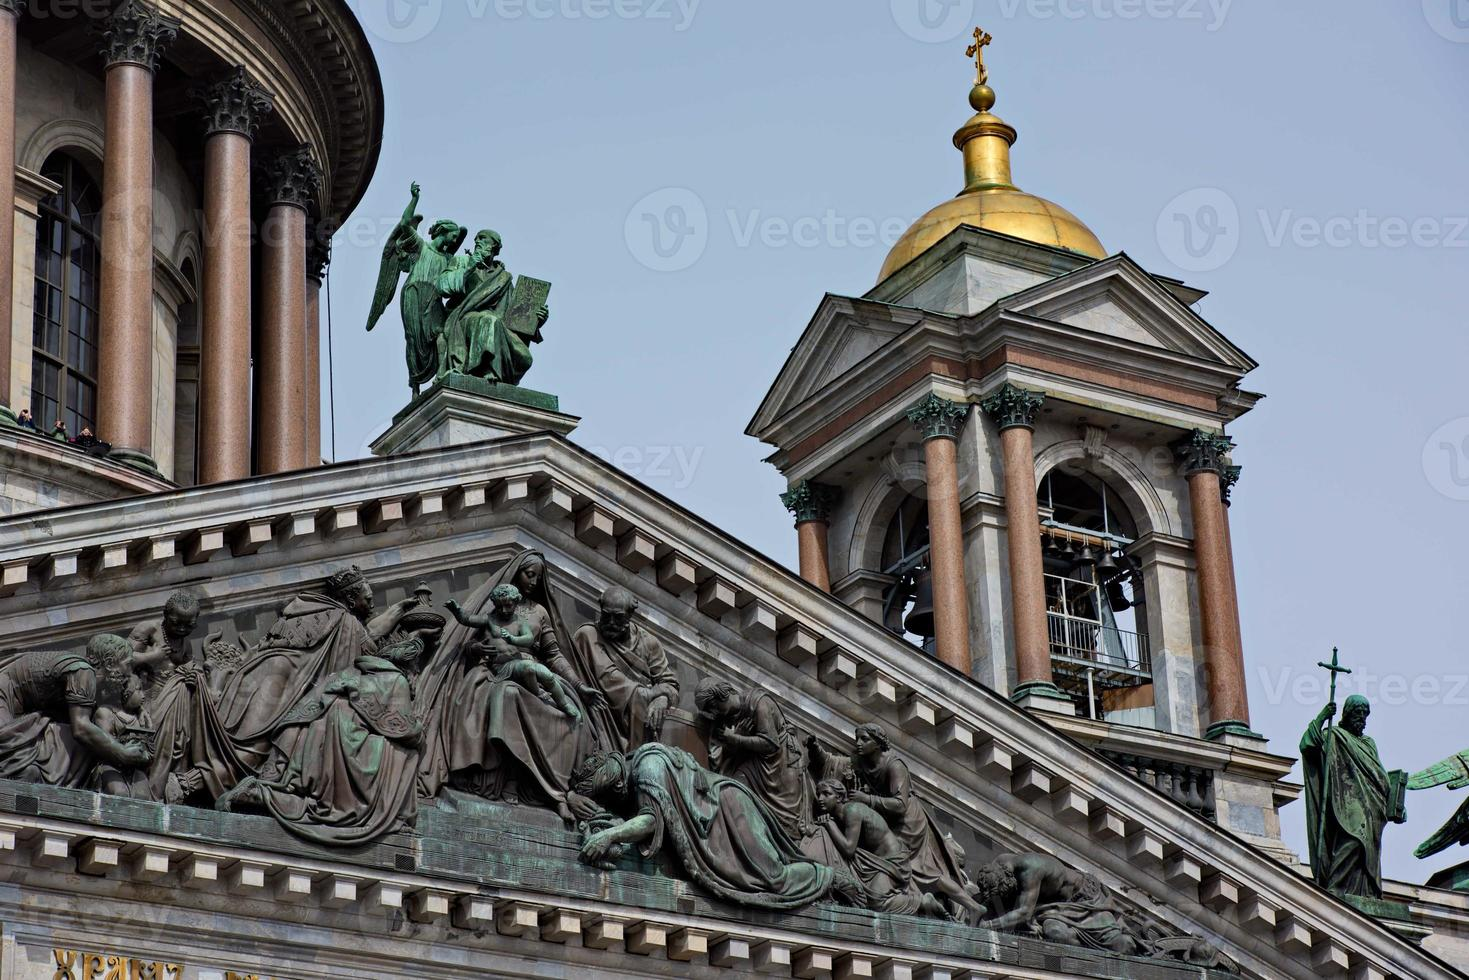 Saint Isaac's Cathedral in Sint-Petersburg, Rusland foto